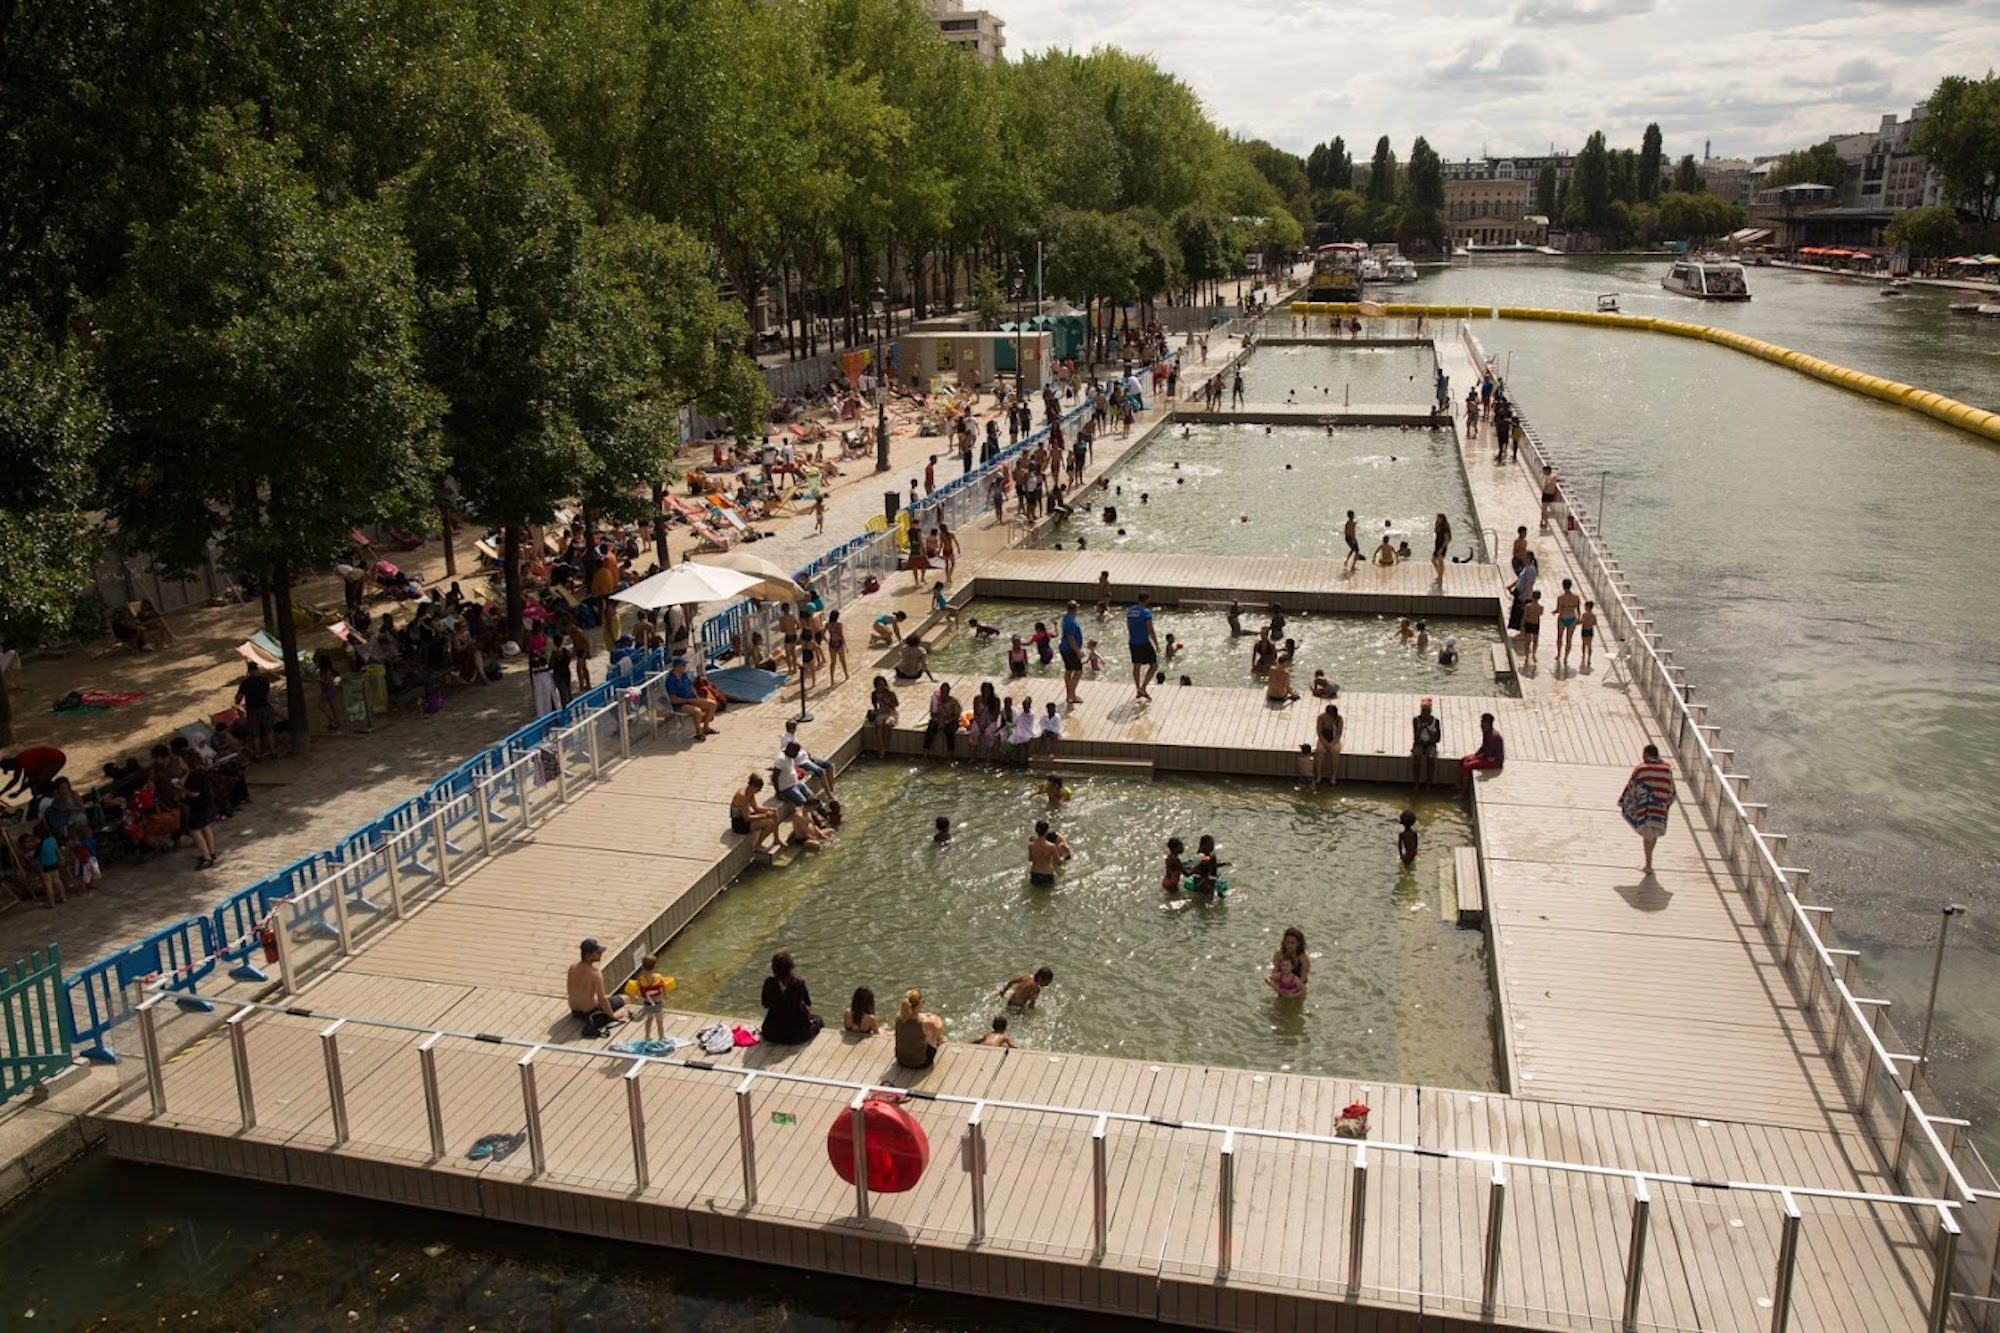 A view of Paris Plages on the Canal de l'Ourcq where you can also swim in the canal.